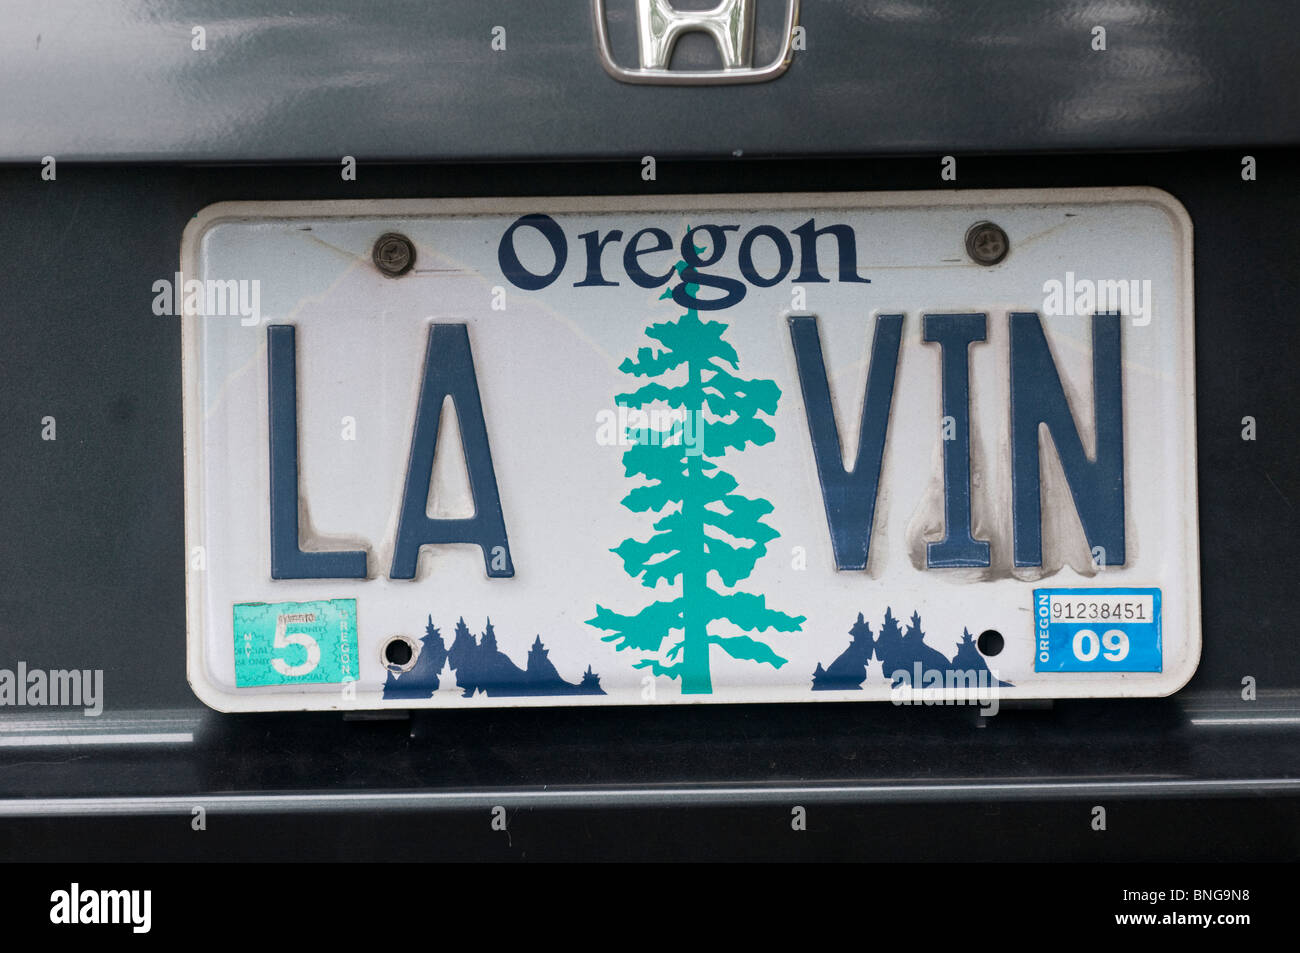 Wine lover's vanity license plate Oregon USA - Stock Image